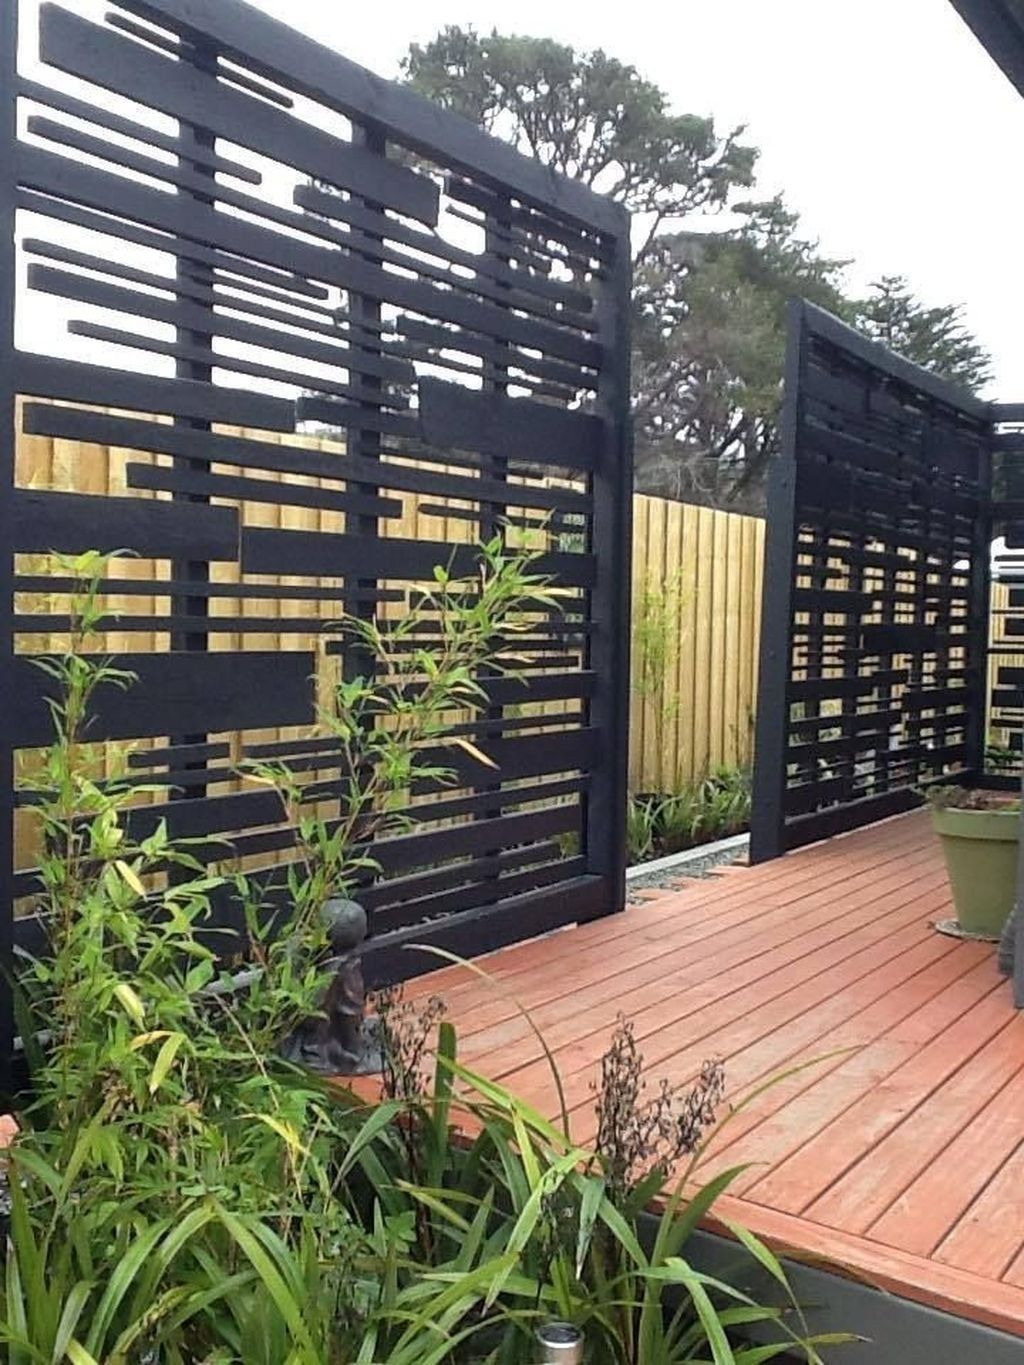 Modified Panel Fence New Best Ideas for Privacy Screen In Your Yard29